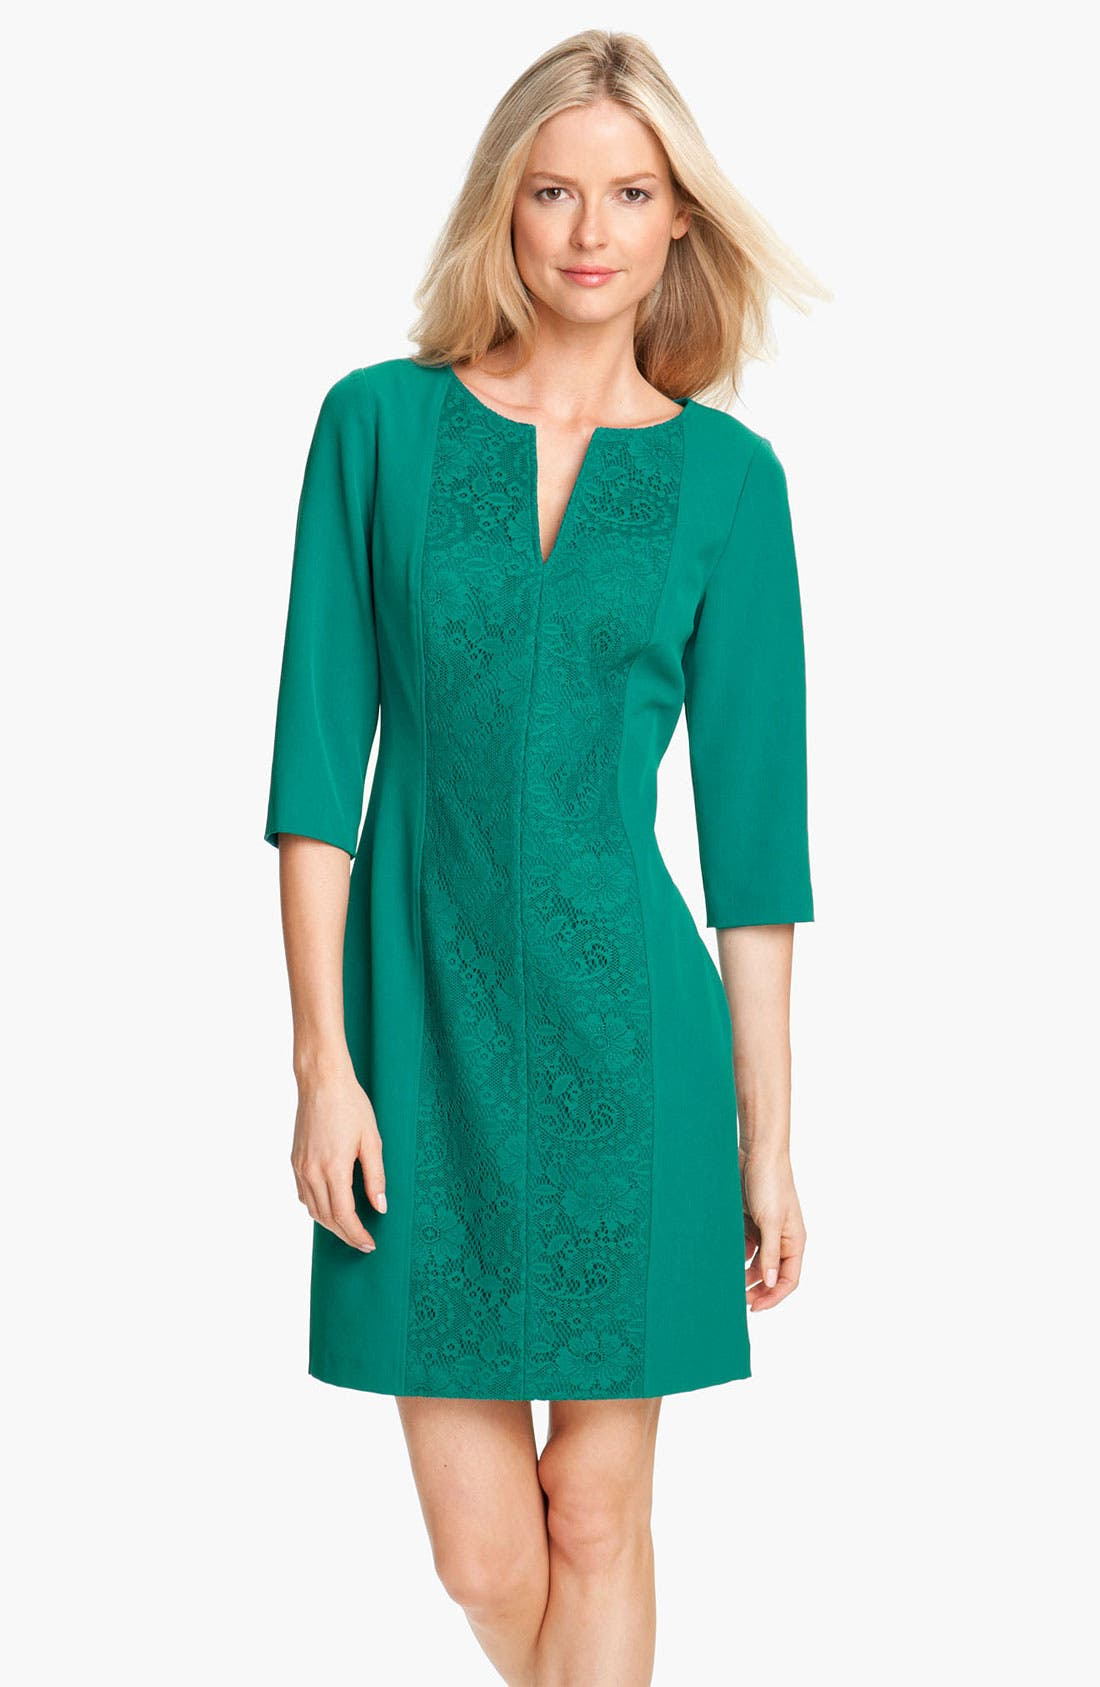 Alternate Image 1 Selected - Adrianna Papell Lace Inset Crepe Dress